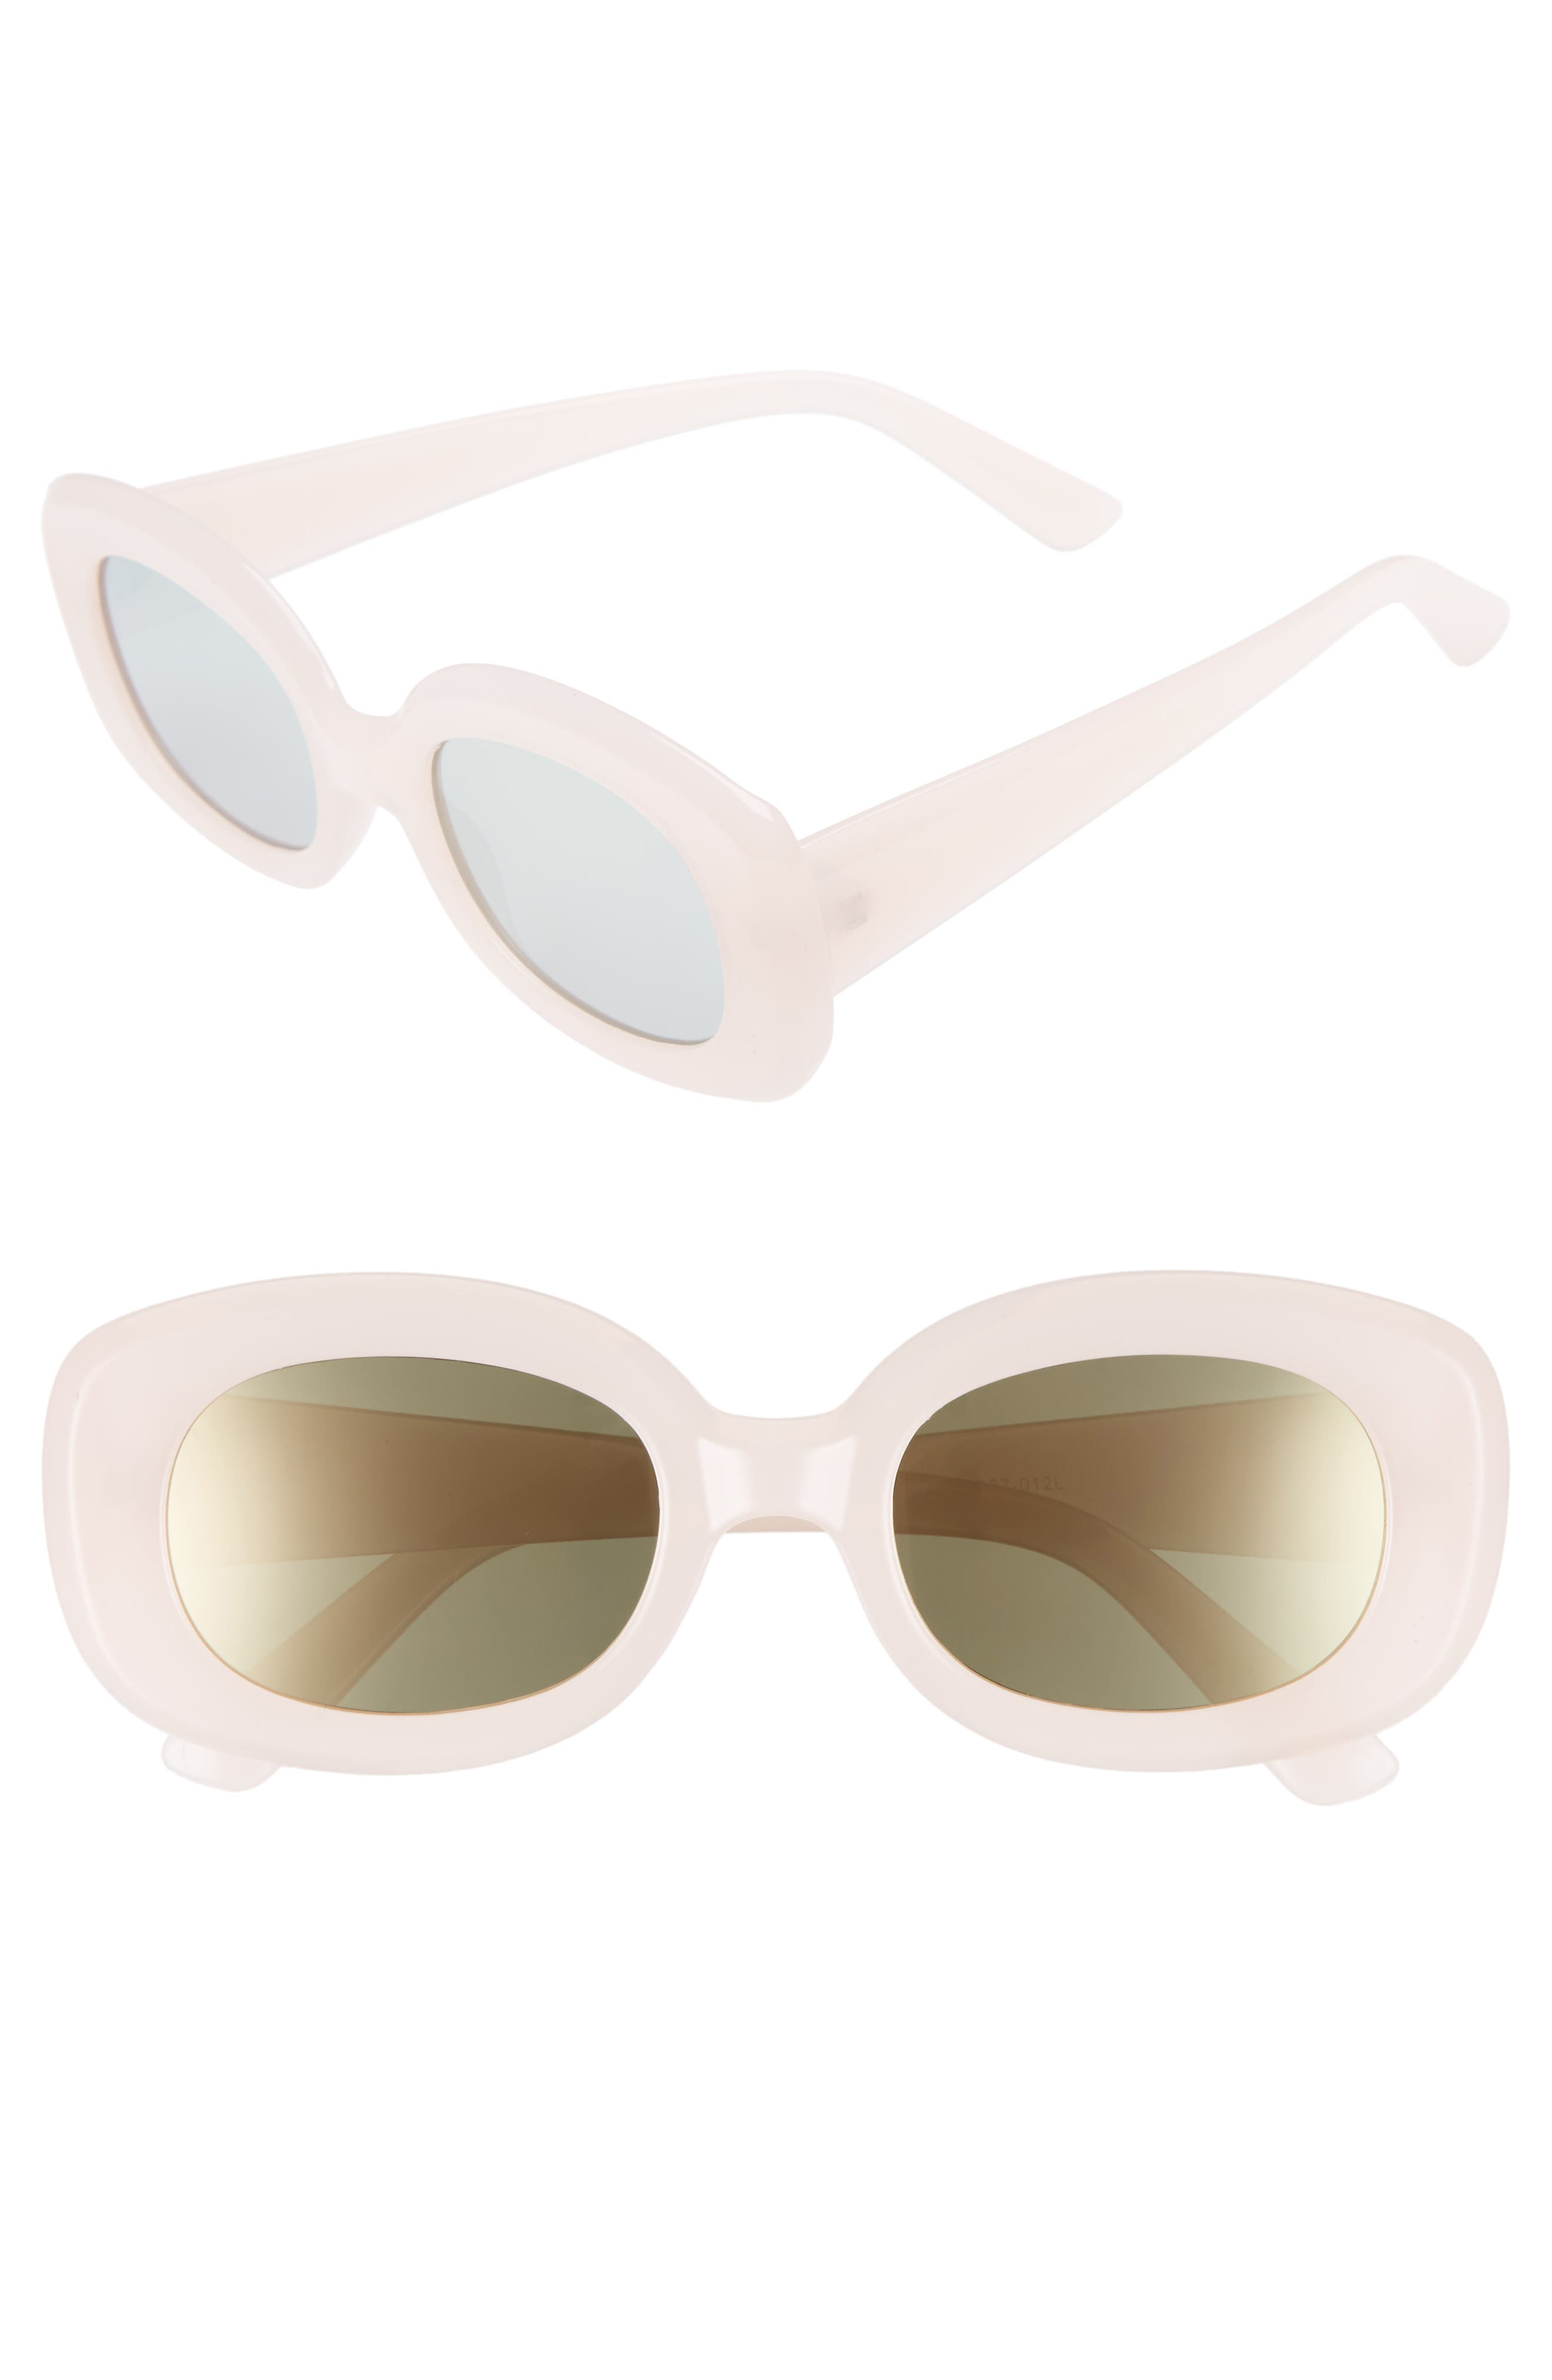 48mm Small Square Sunglasses,                             Main thumbnail 1, color,                             PINK